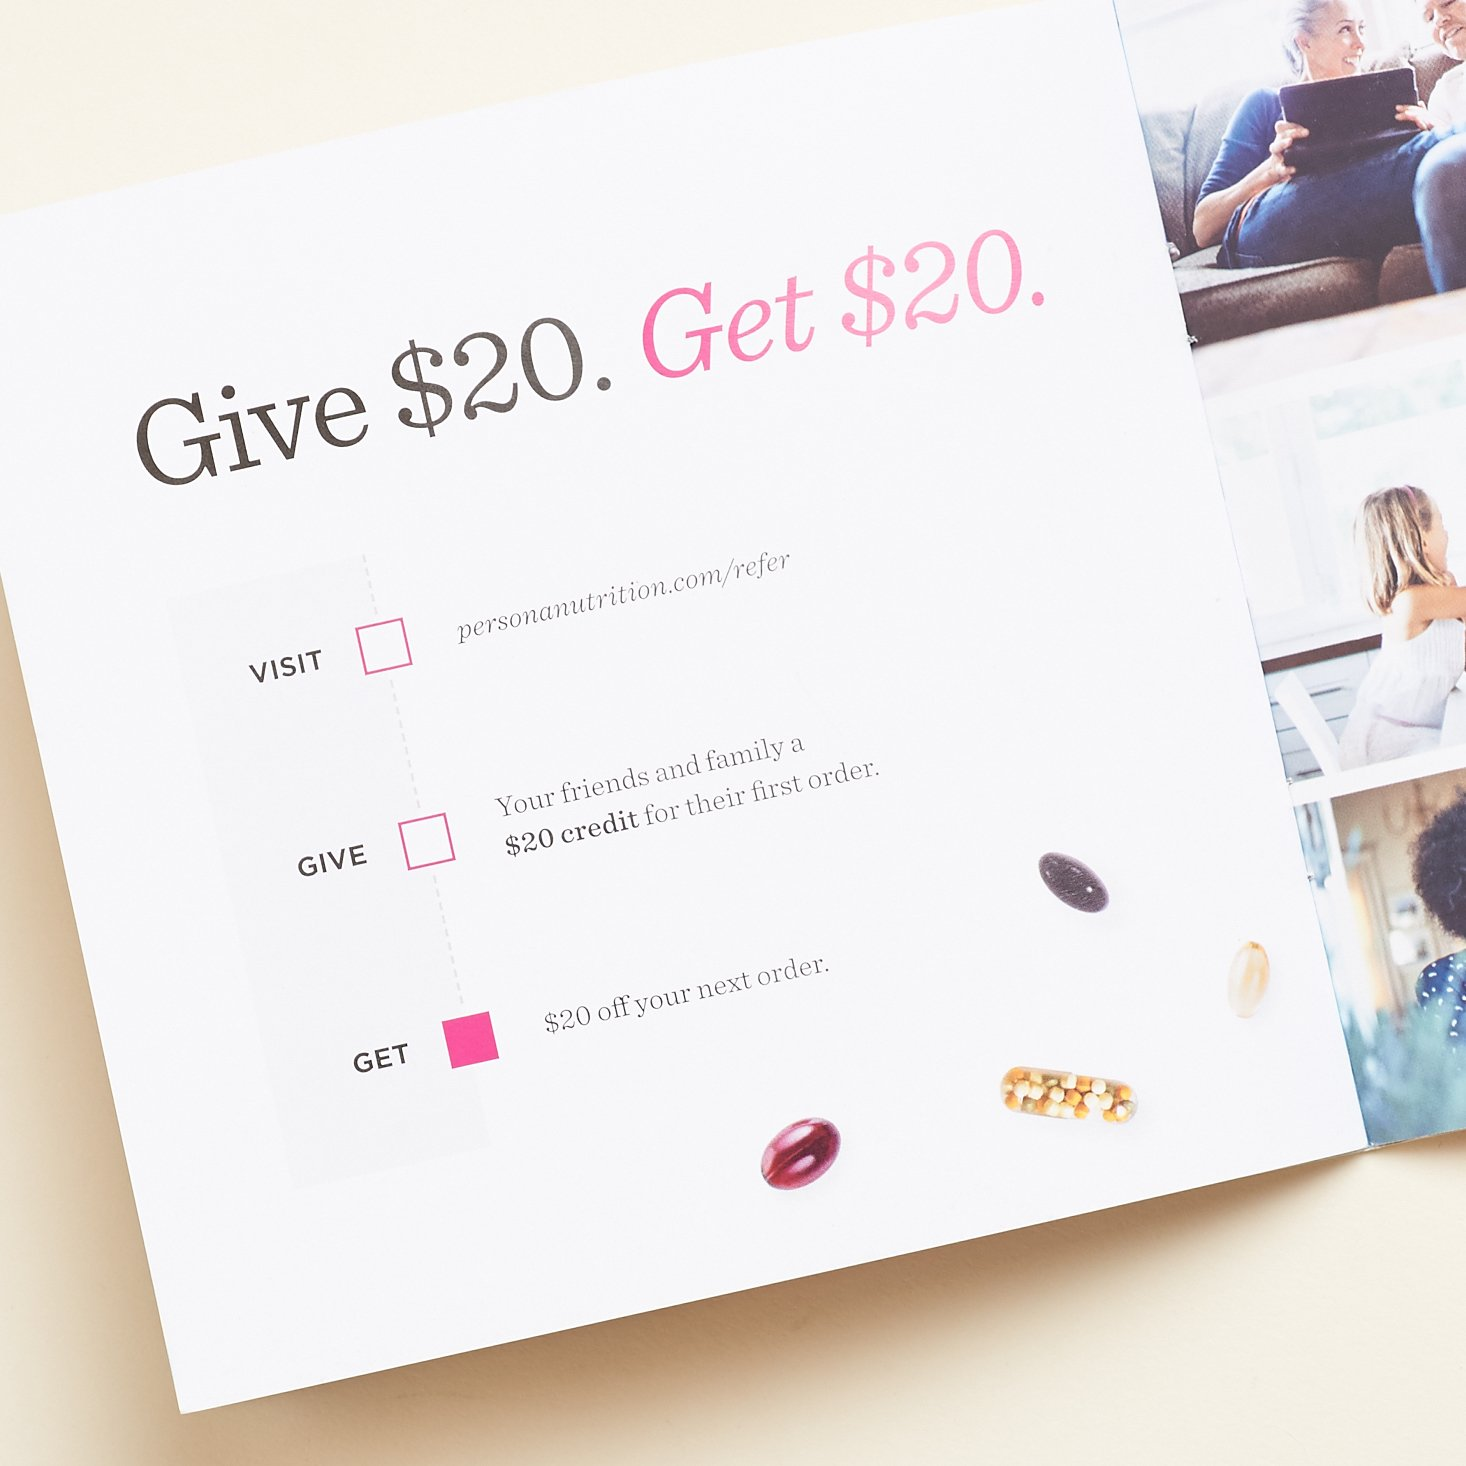 Give $20, Get $20 referral explanation